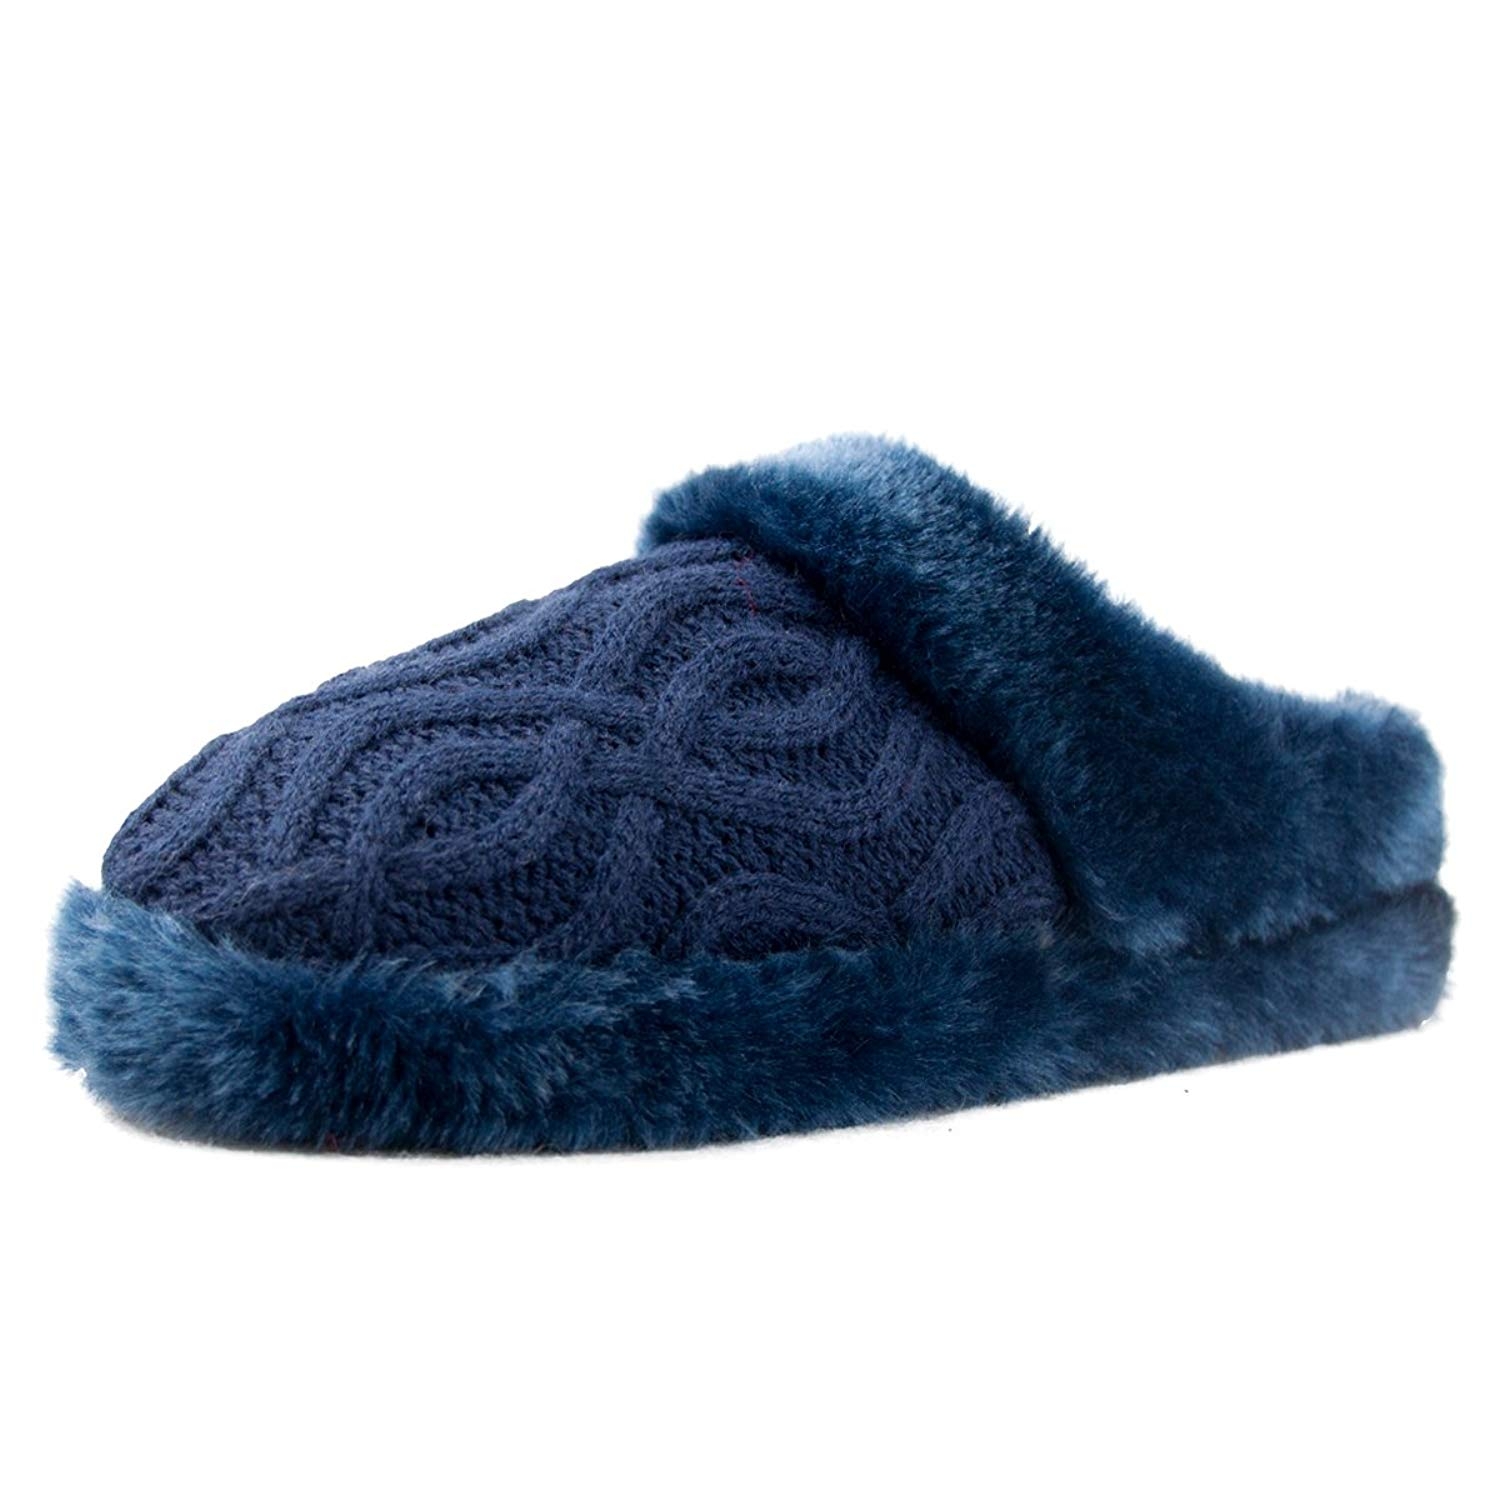 cf2e7162276 Get Quotations · Leve Fuzzy Slippers